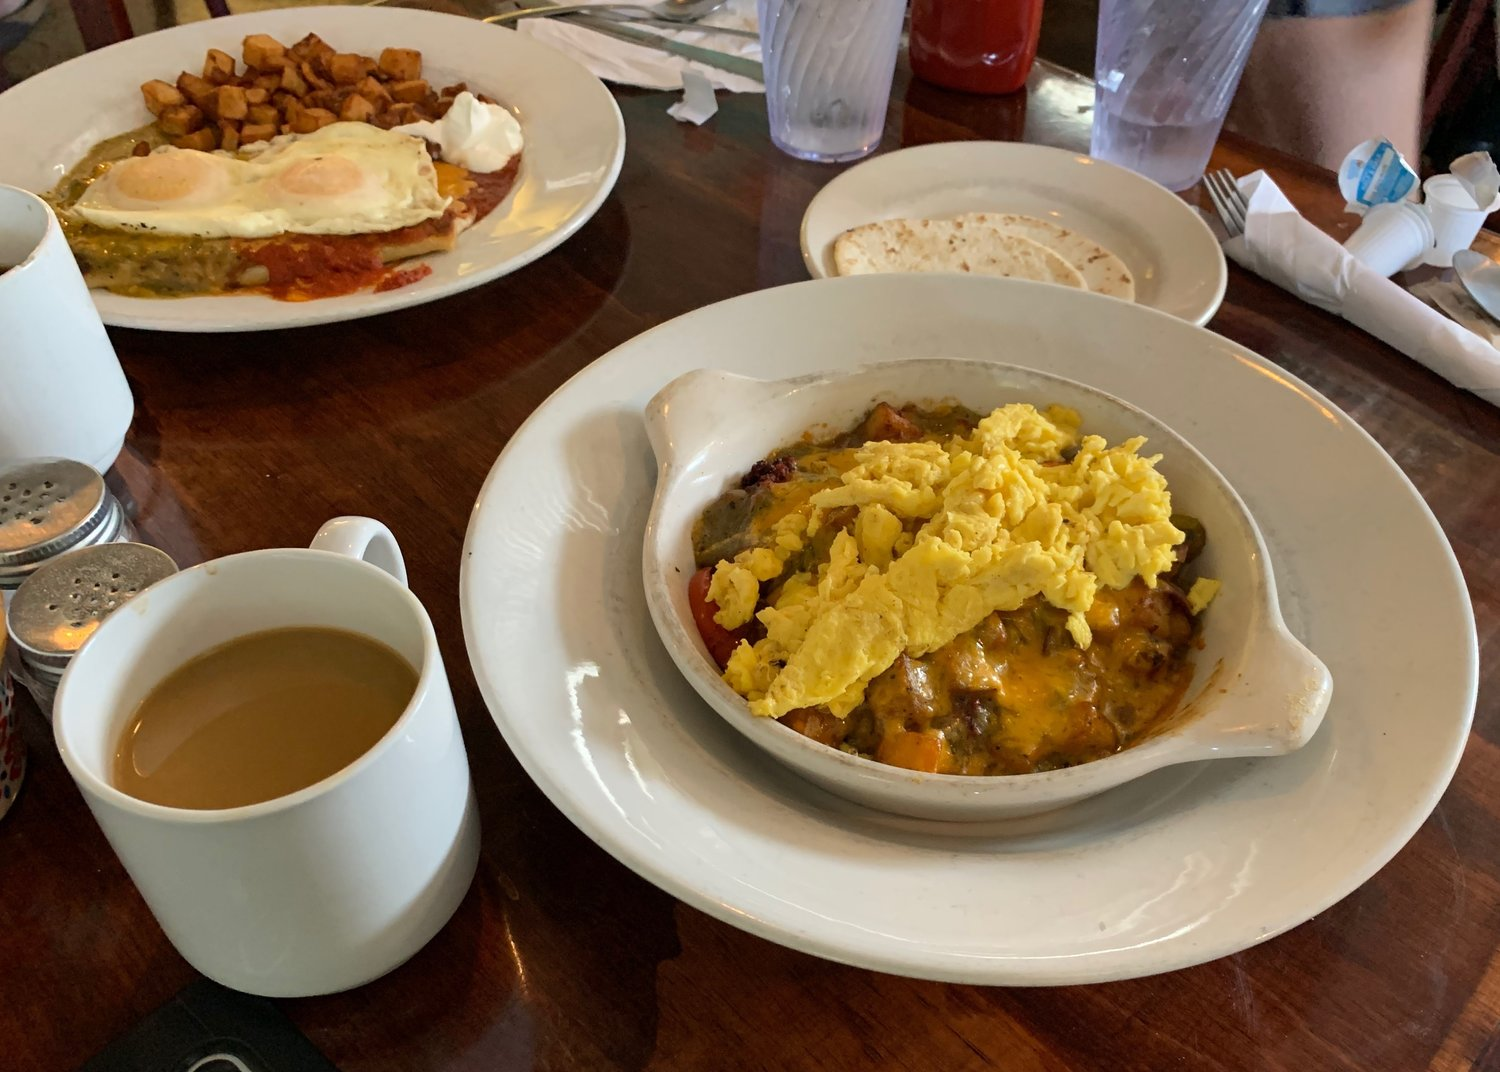 The Southwest Breakfast Bowl ($10.50) with scrambled eggs.